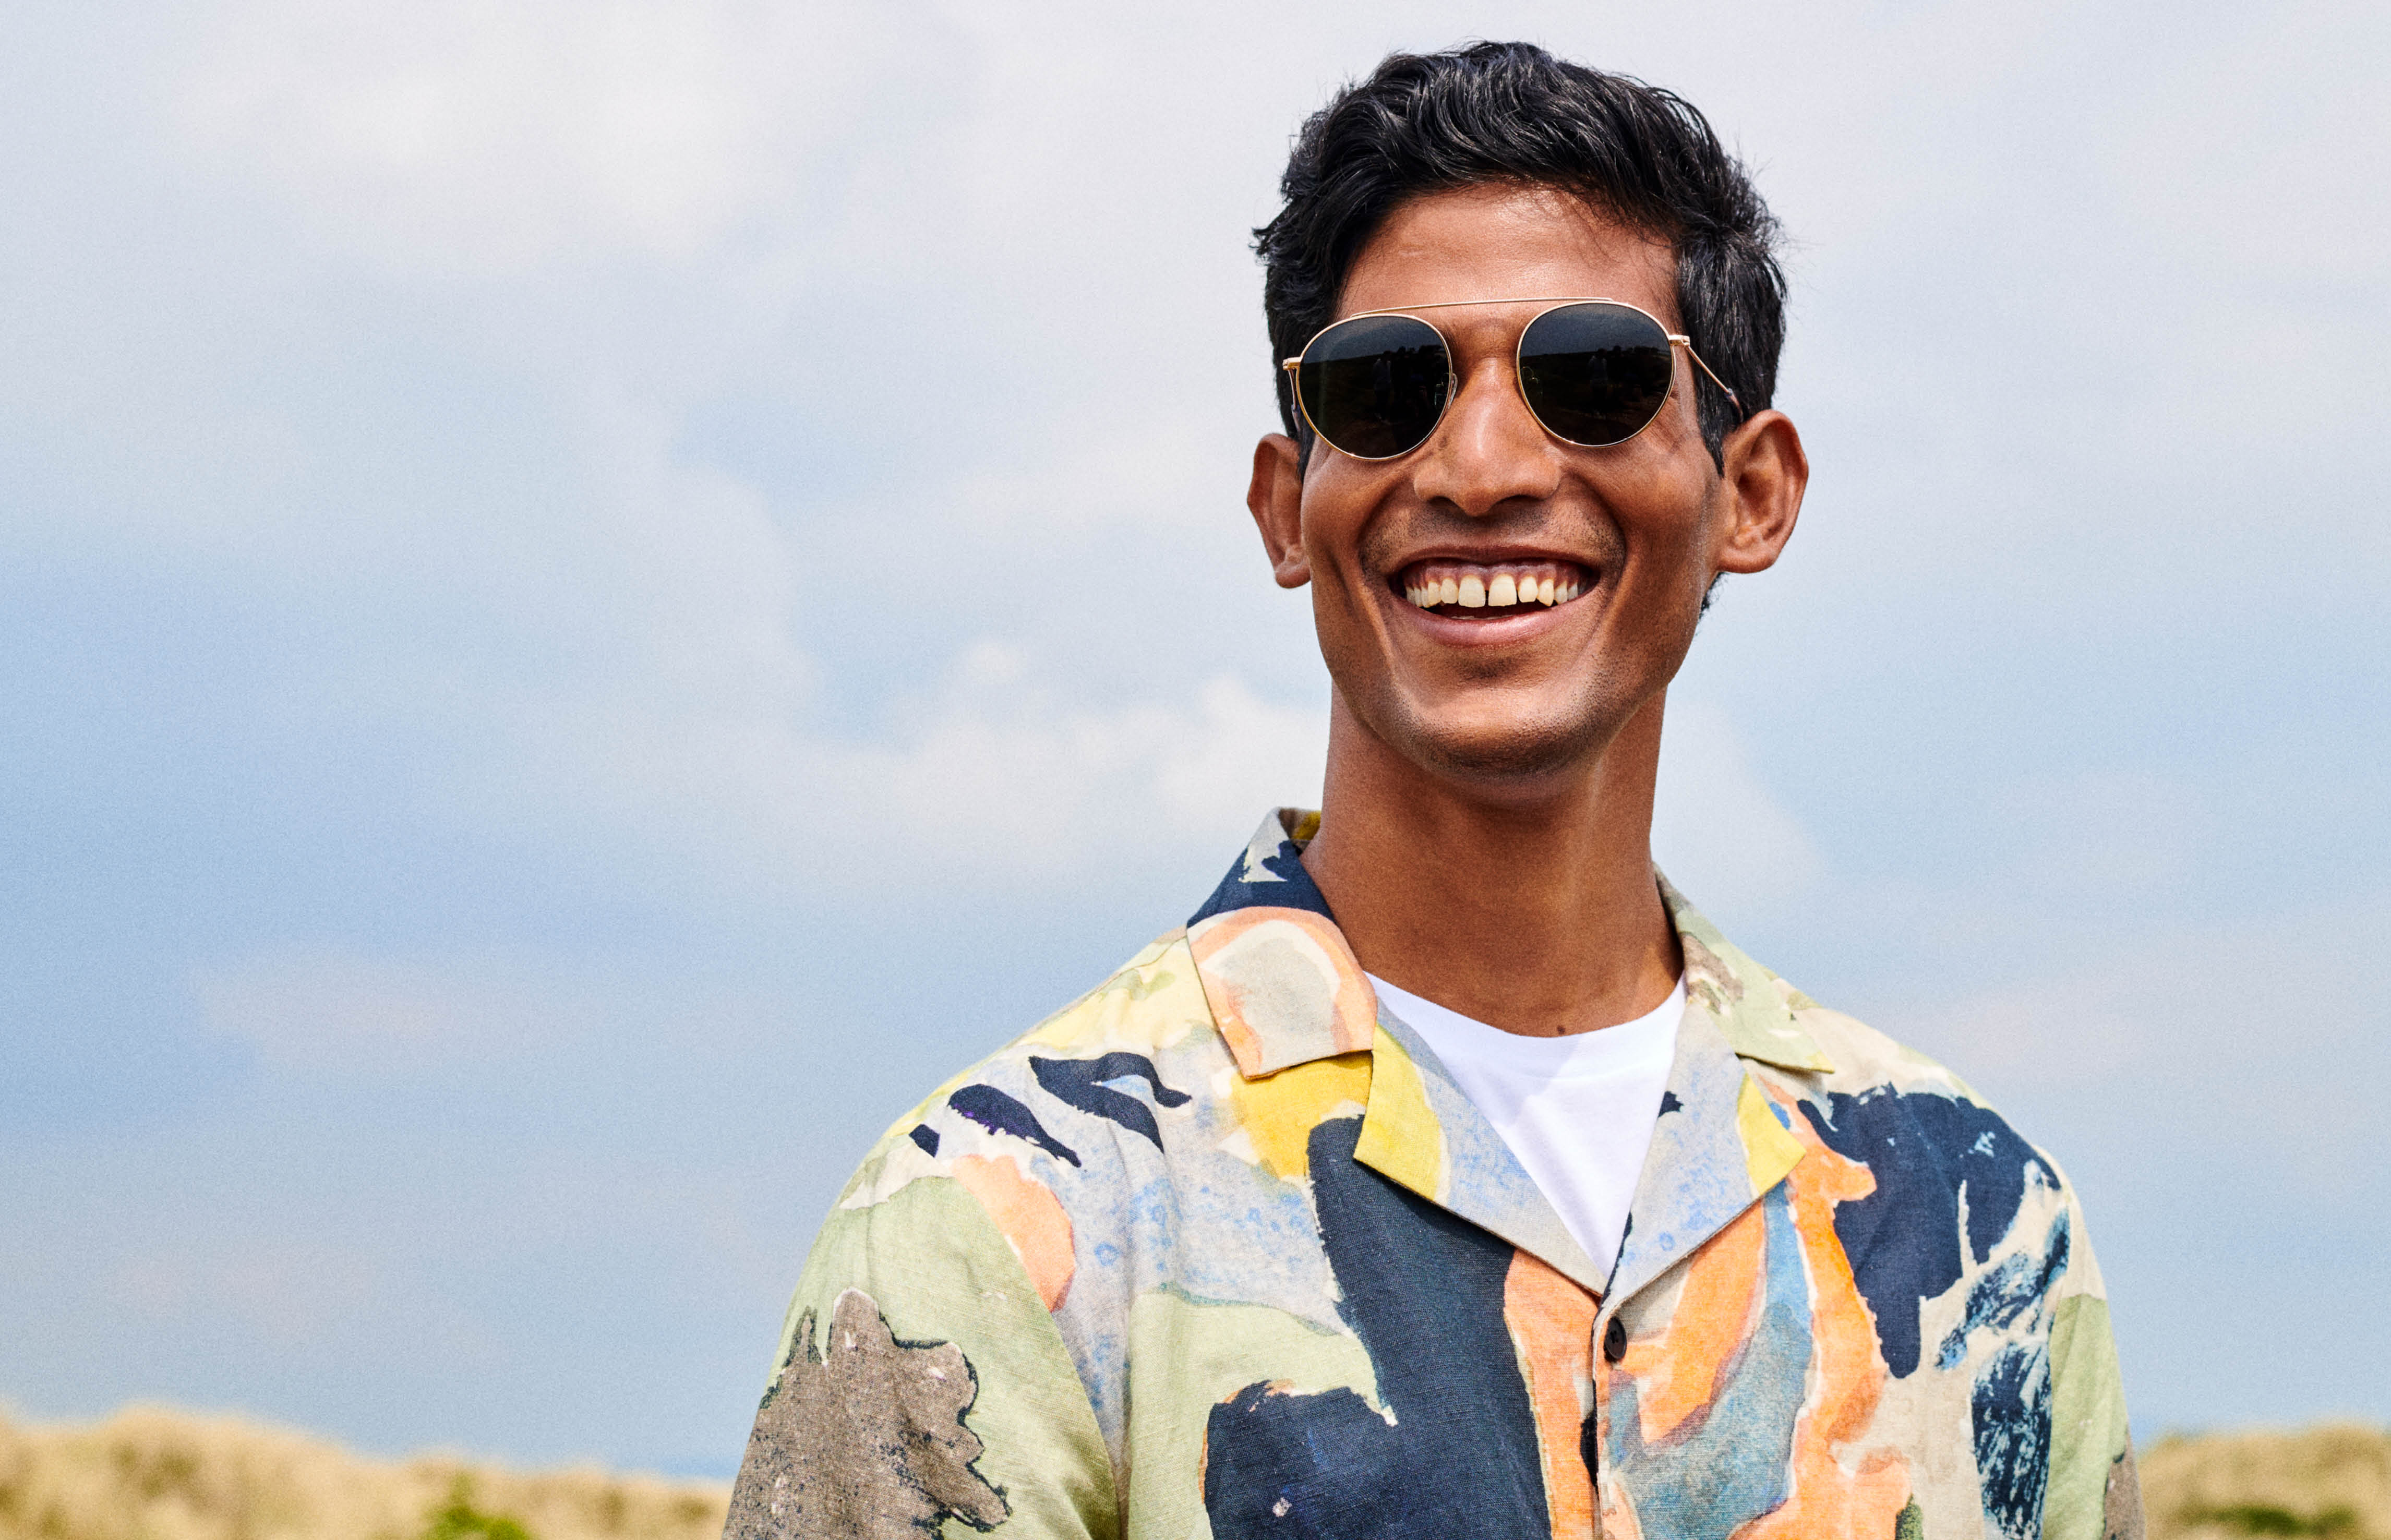 Four of the best sunglasses for summer